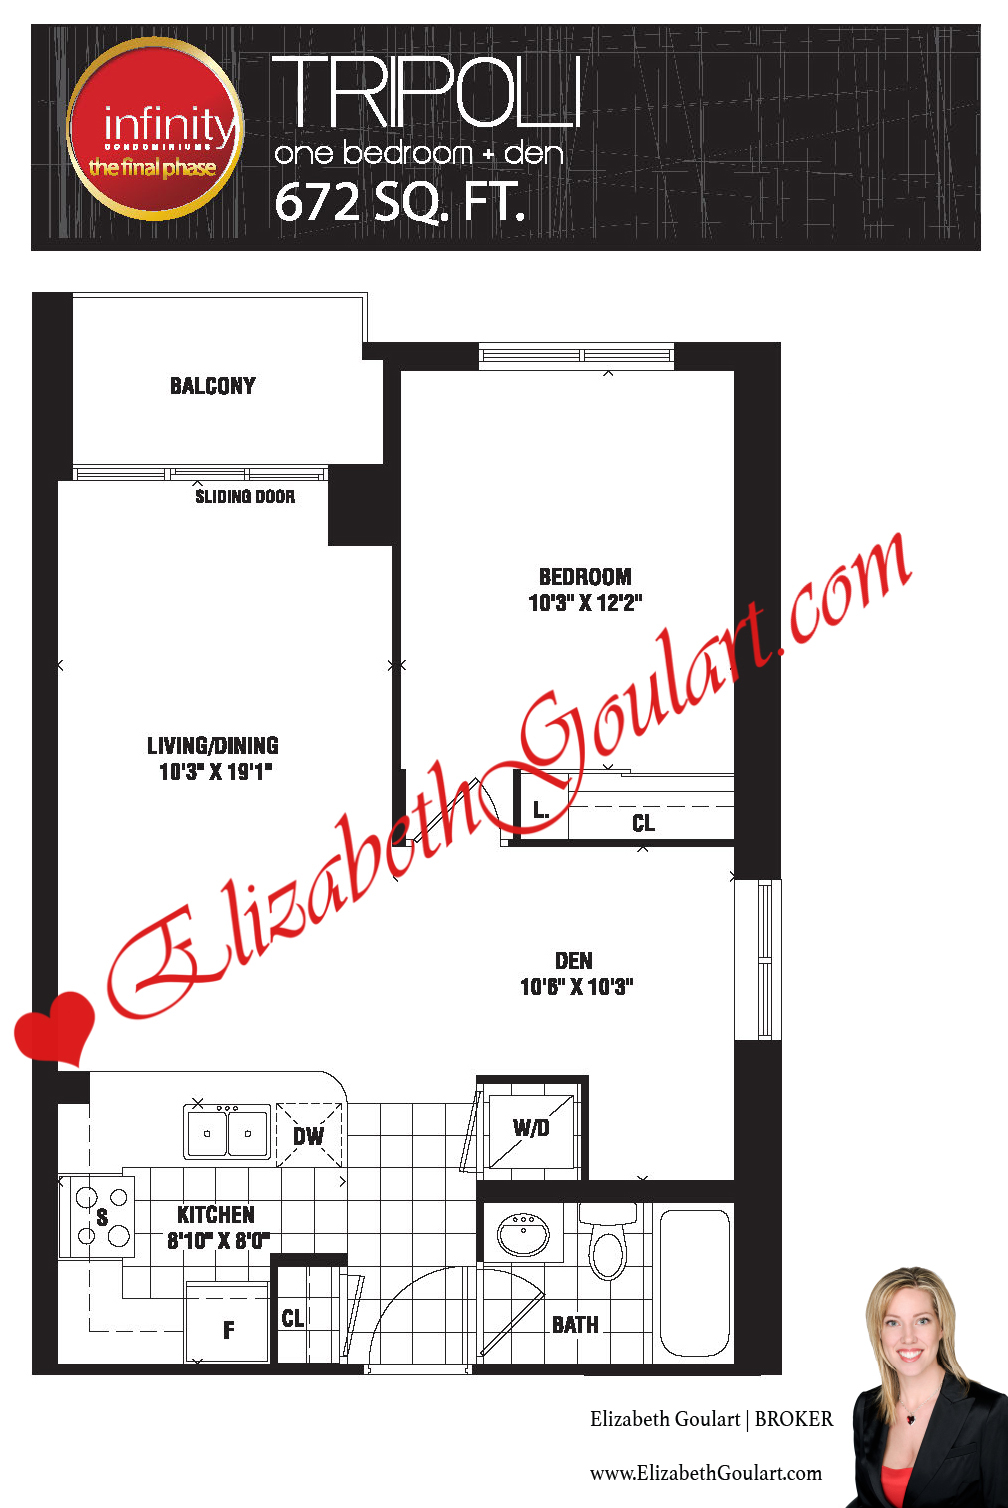 Source crescent street bedroom house plans story open for 126 simcoe floor plan